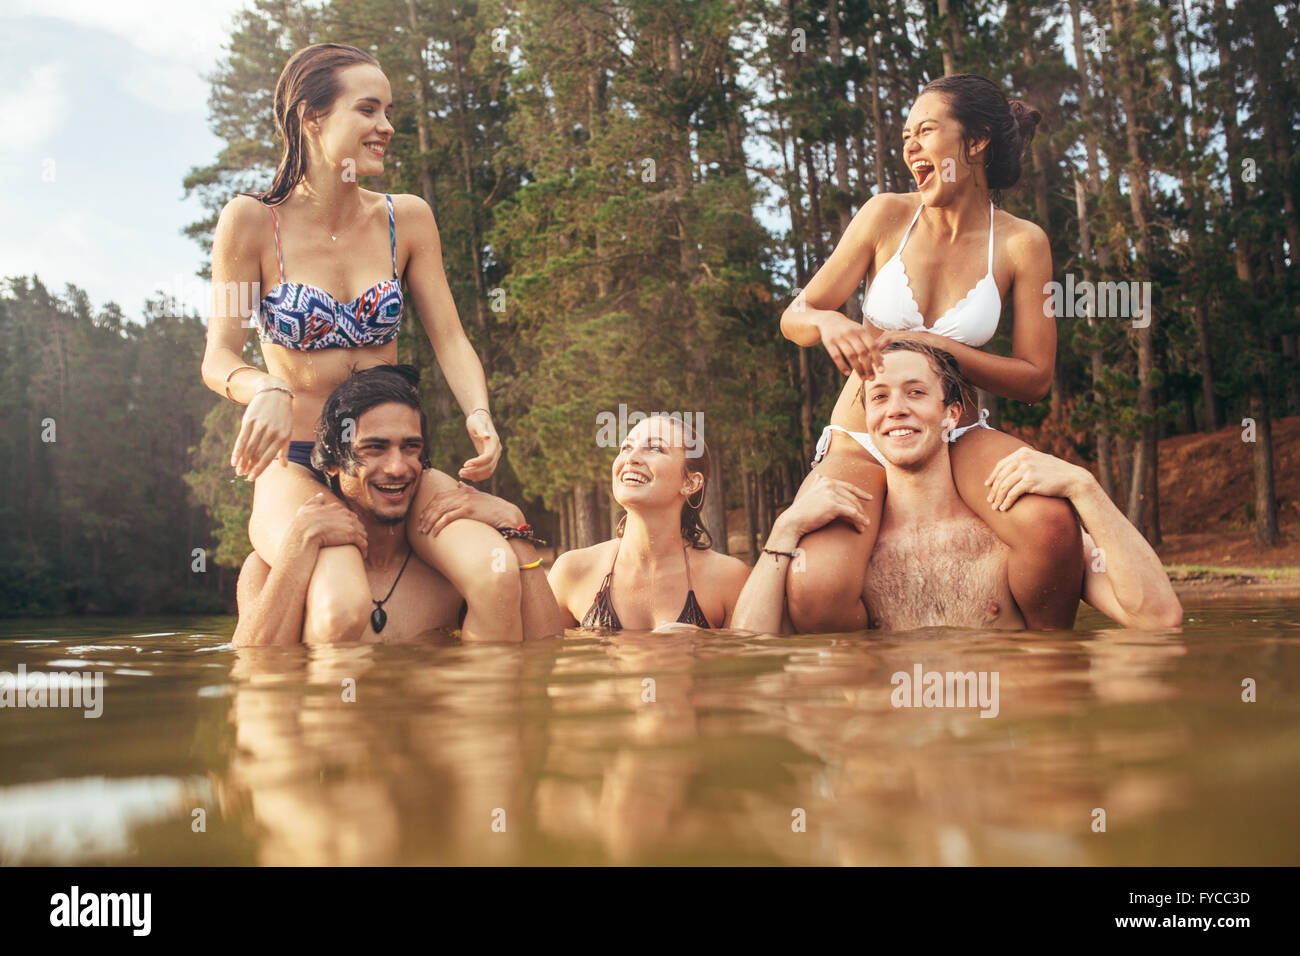 Portrait of young men in a lake carrying women on shoulders. Happy young friends enjoying a day at the lake. - Stock Image